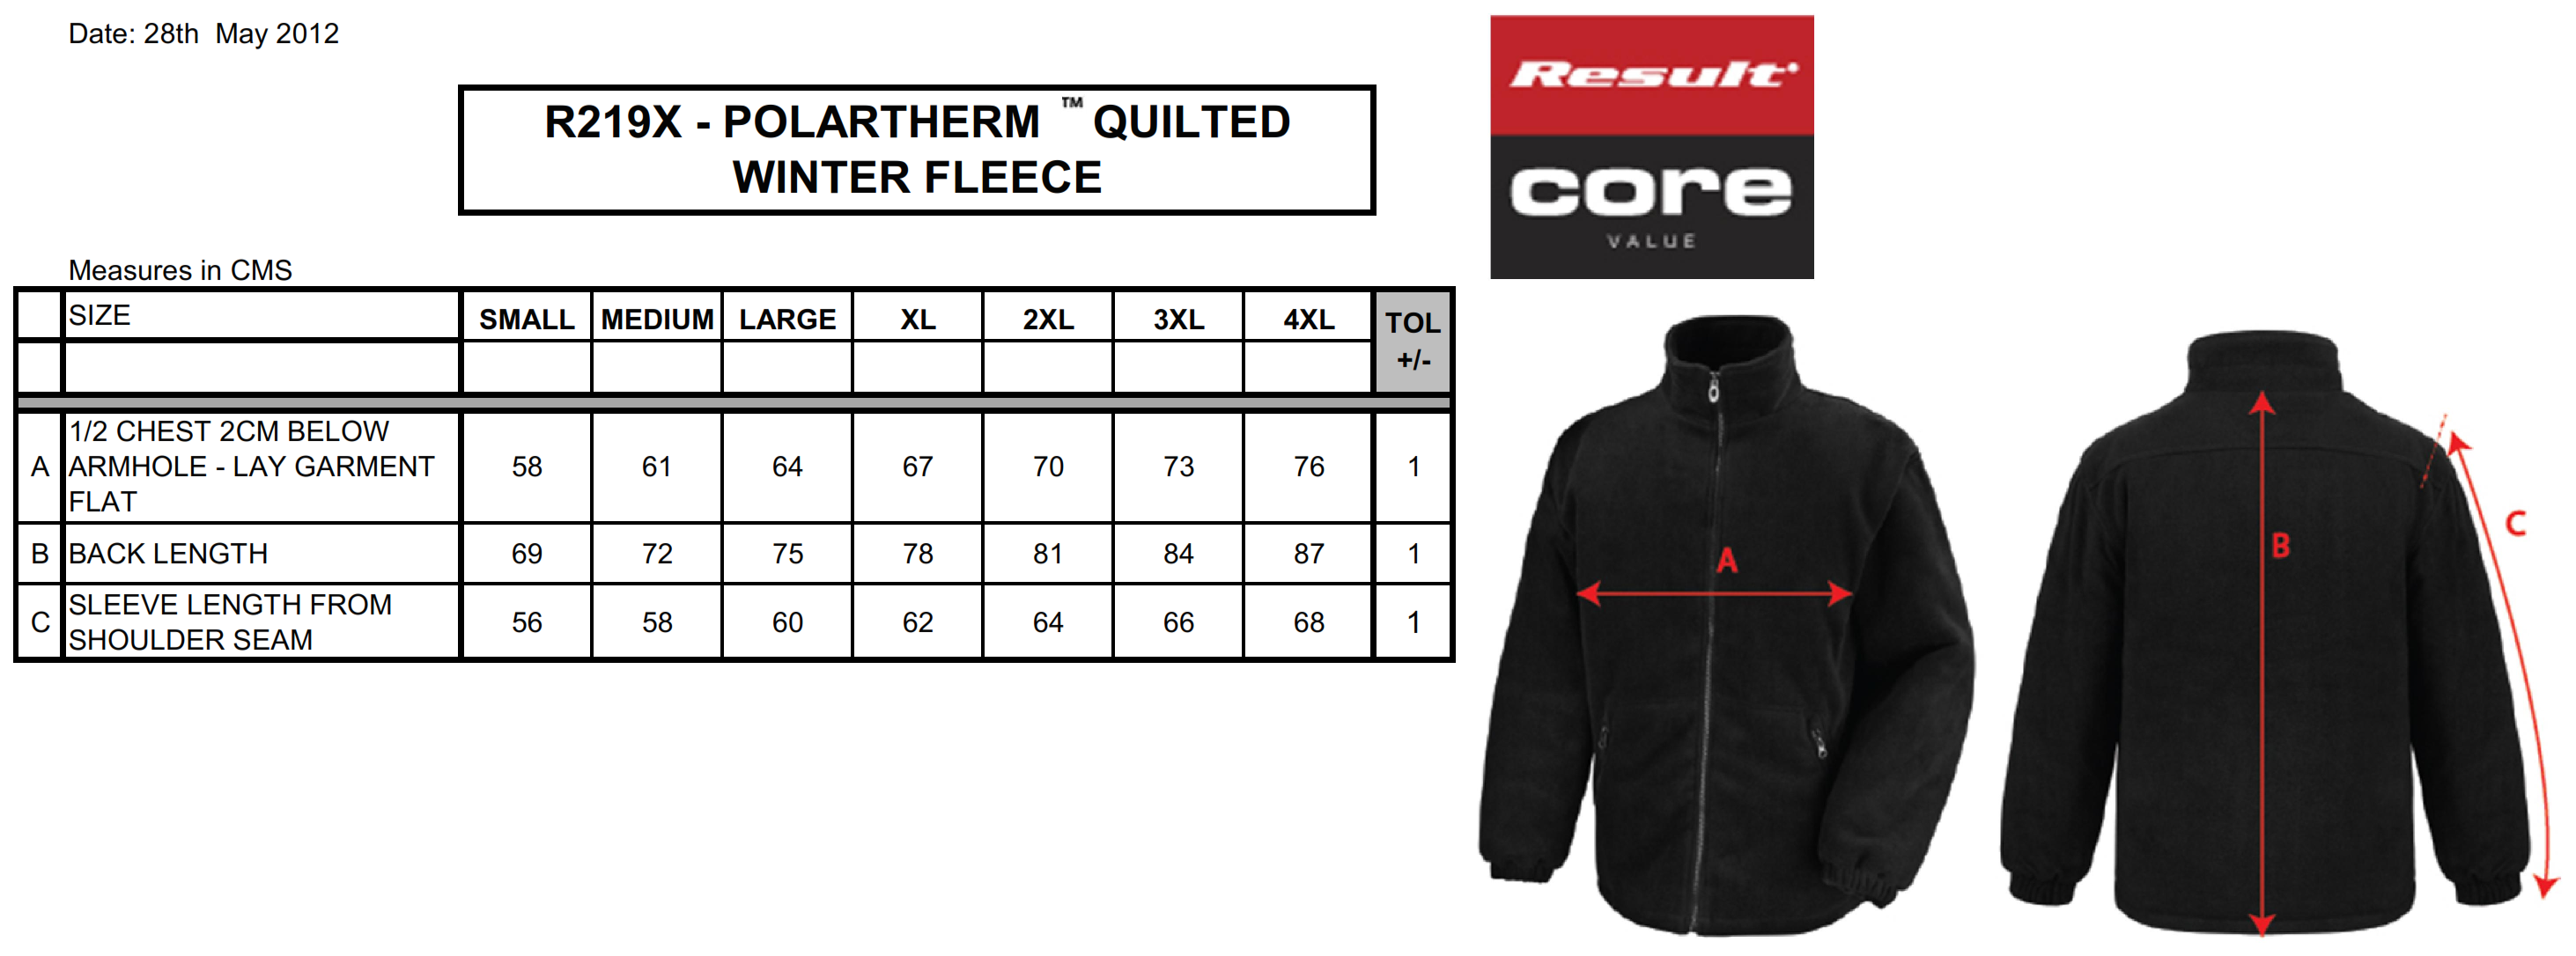 Result: Core Polartherm™ Quilted Winter Fleece R219X